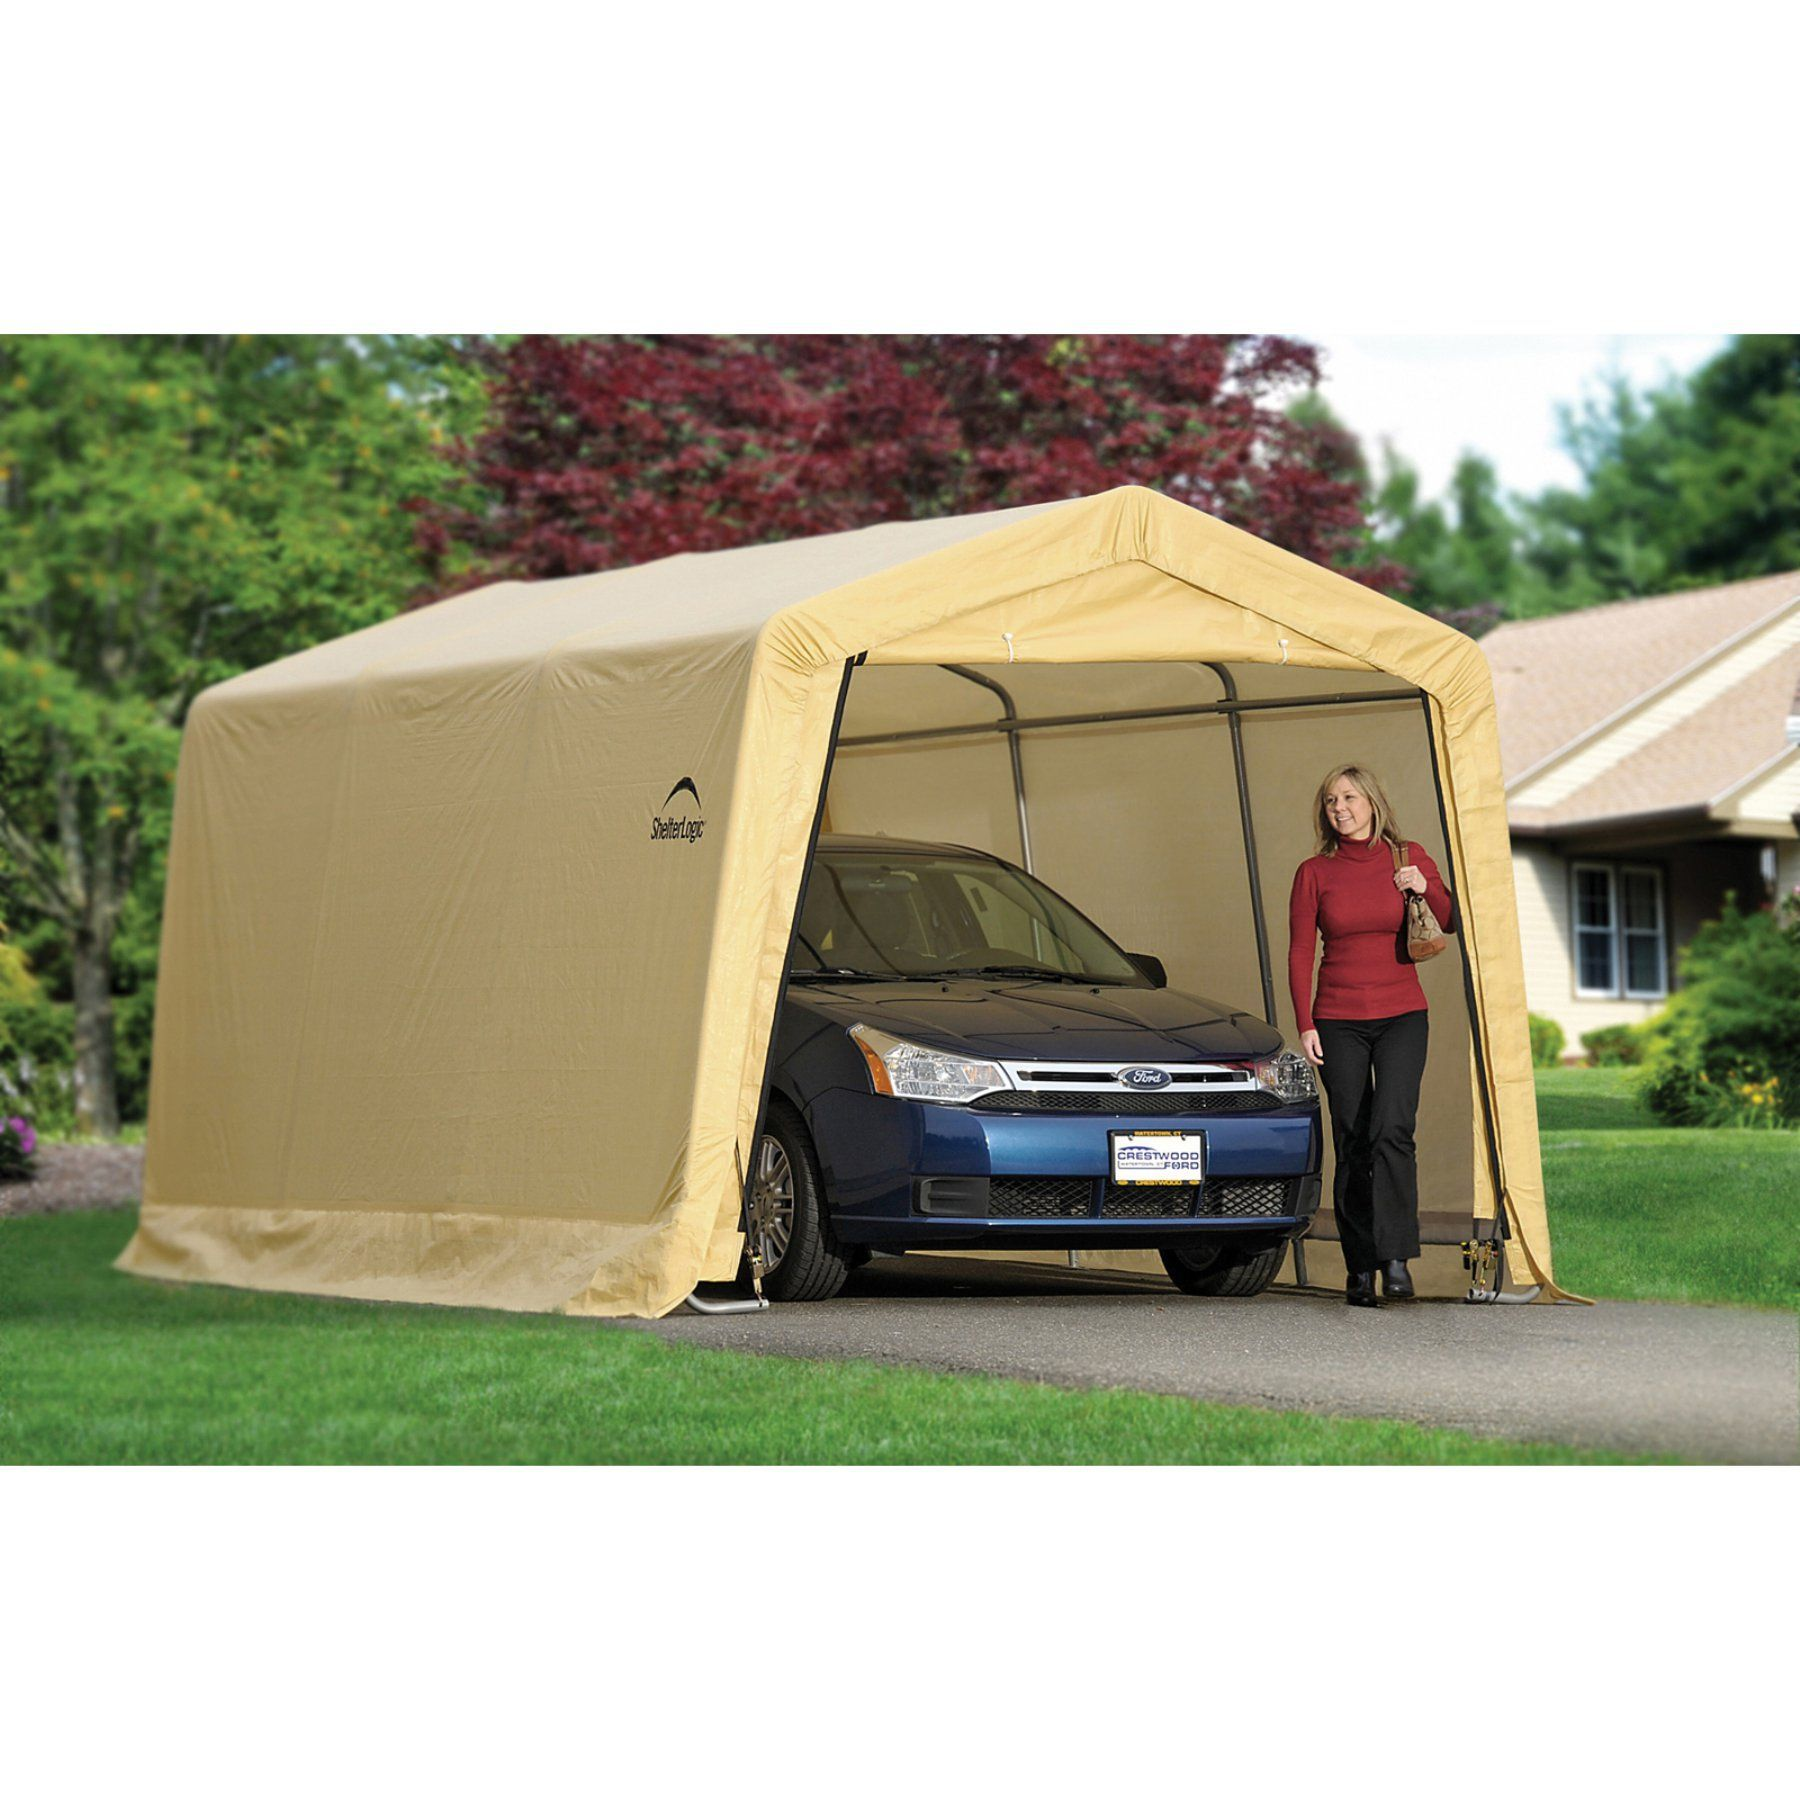 folding wooden and shelters freestanding garages between early residential garage portable car ideas history